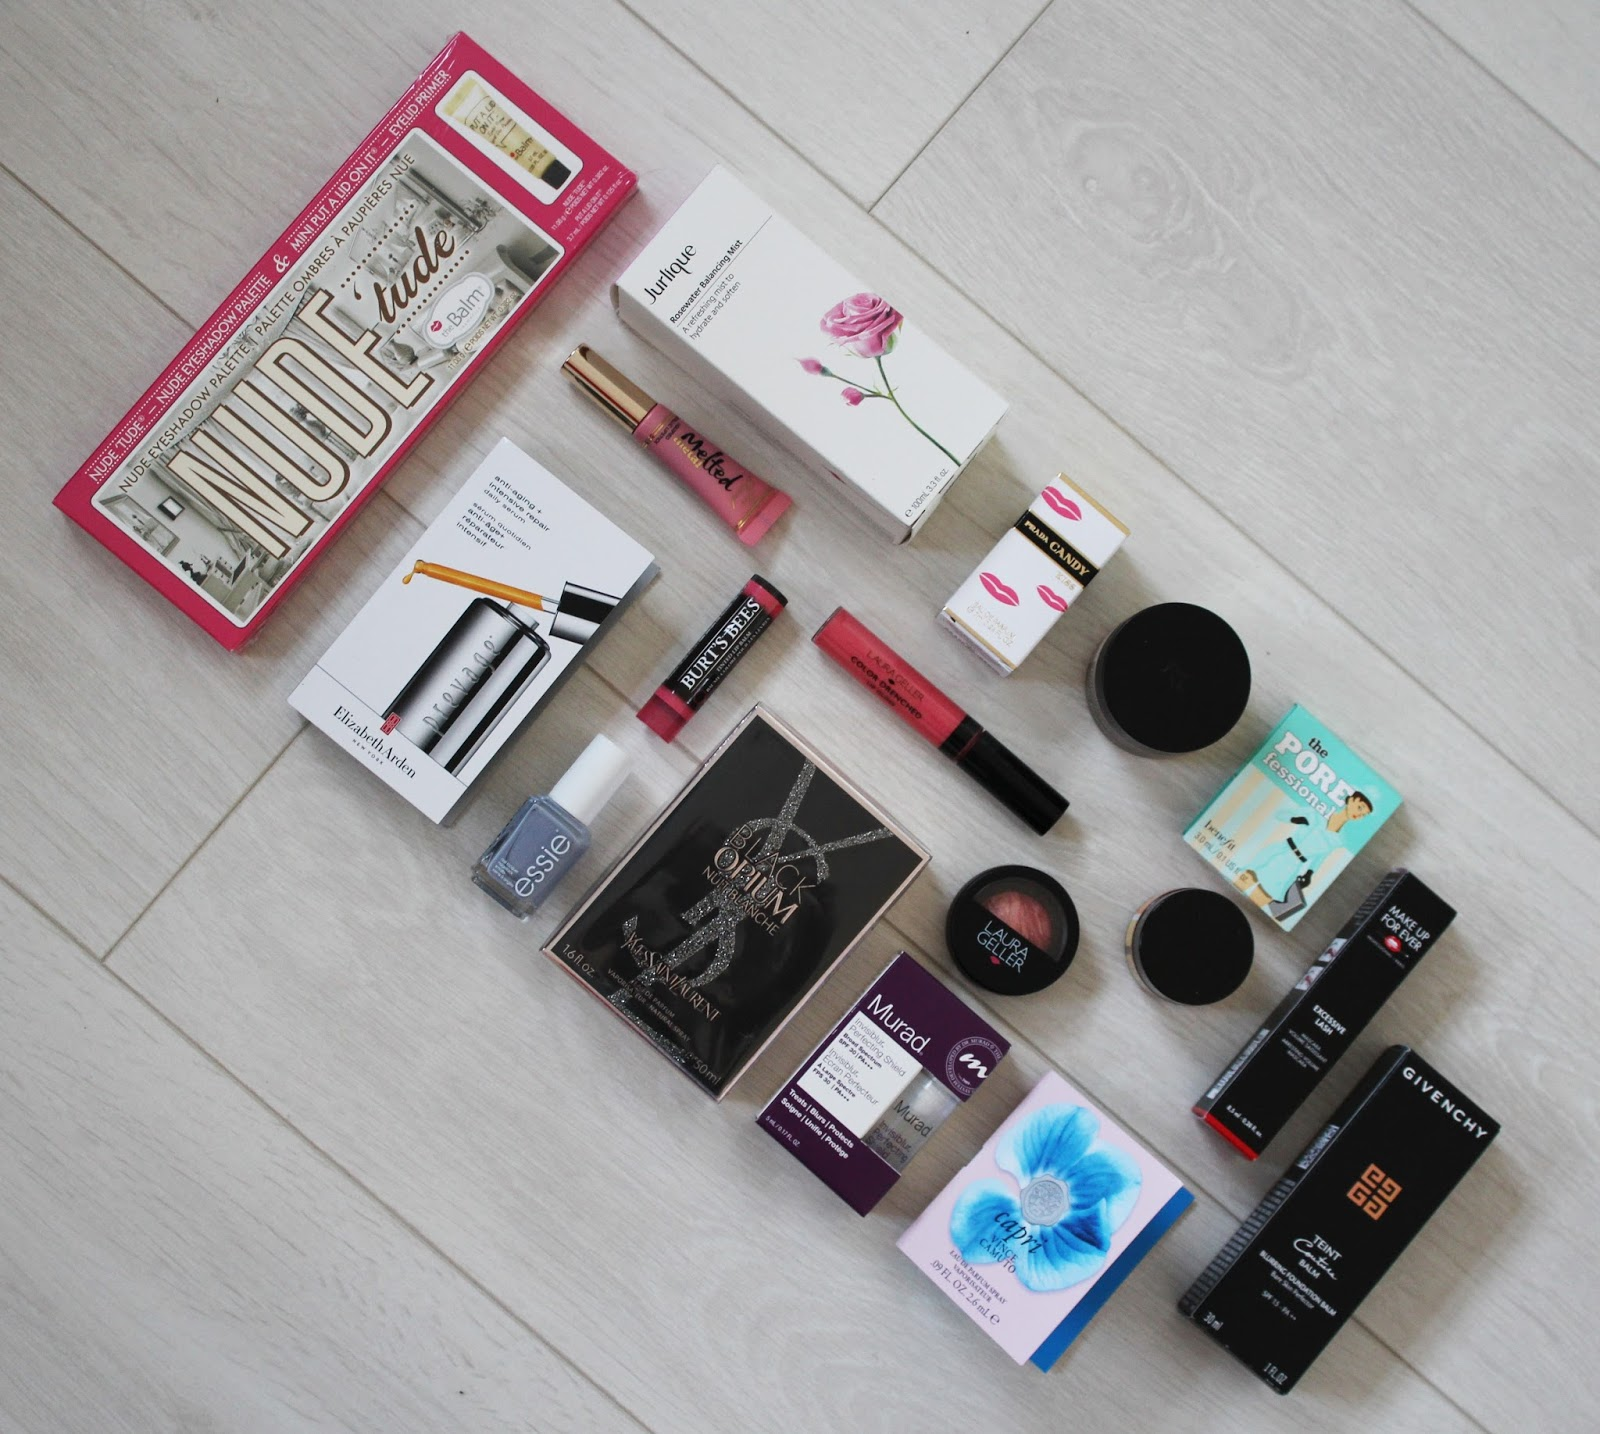 Debenhams Beauty Press Day - SS16 25 - Goodie bag